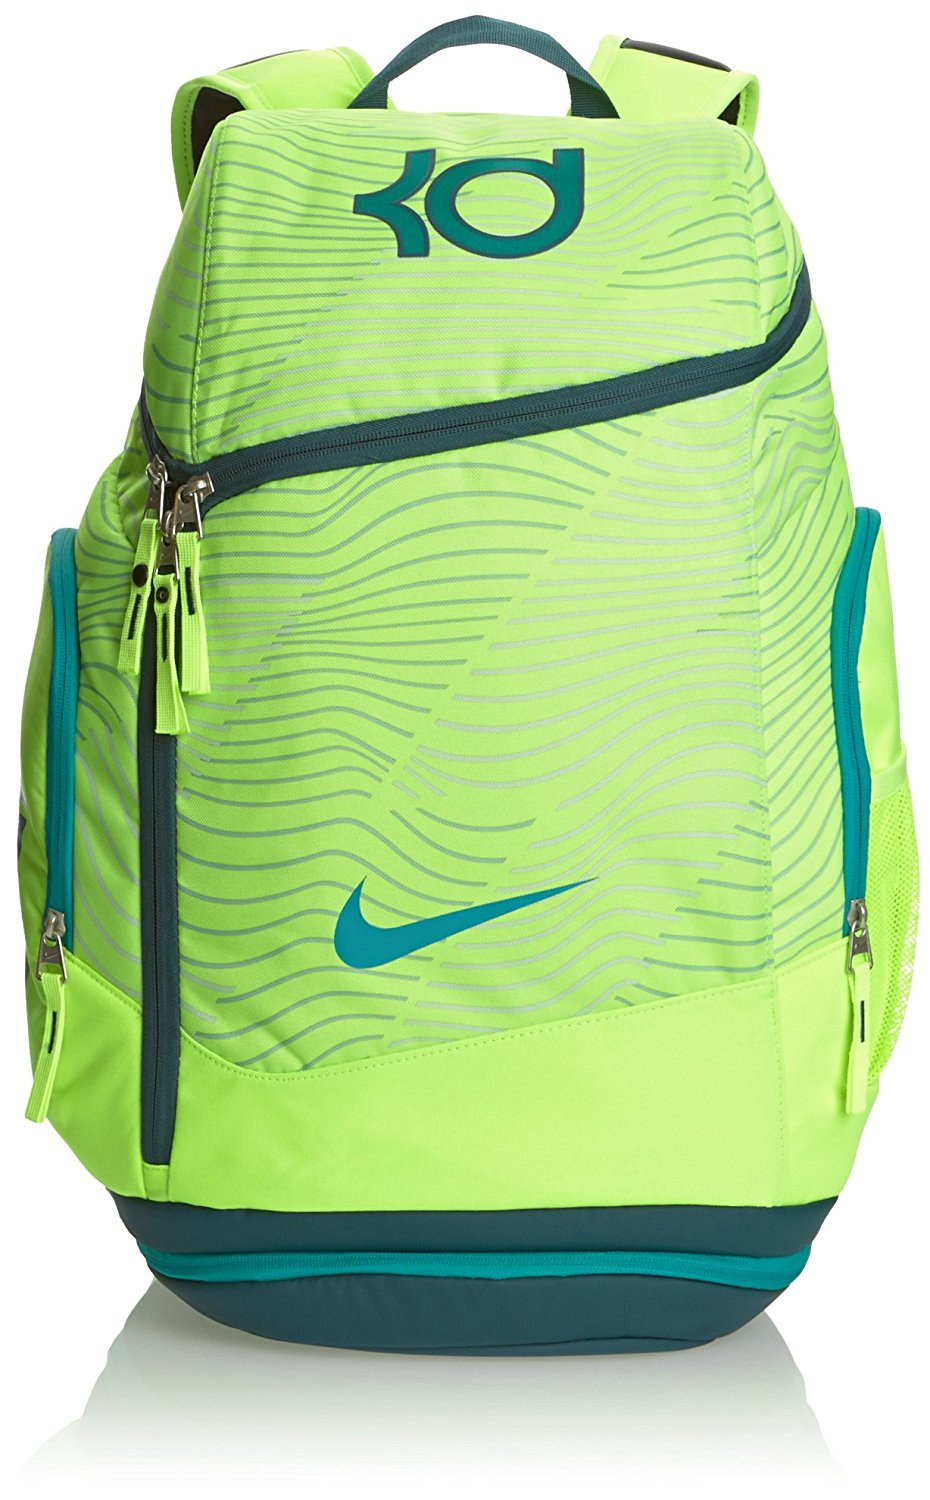 d343d70d5f77 Buy Nike Unisex KD Max Air Basketball Backpack BA4853 in Cheap Price ...